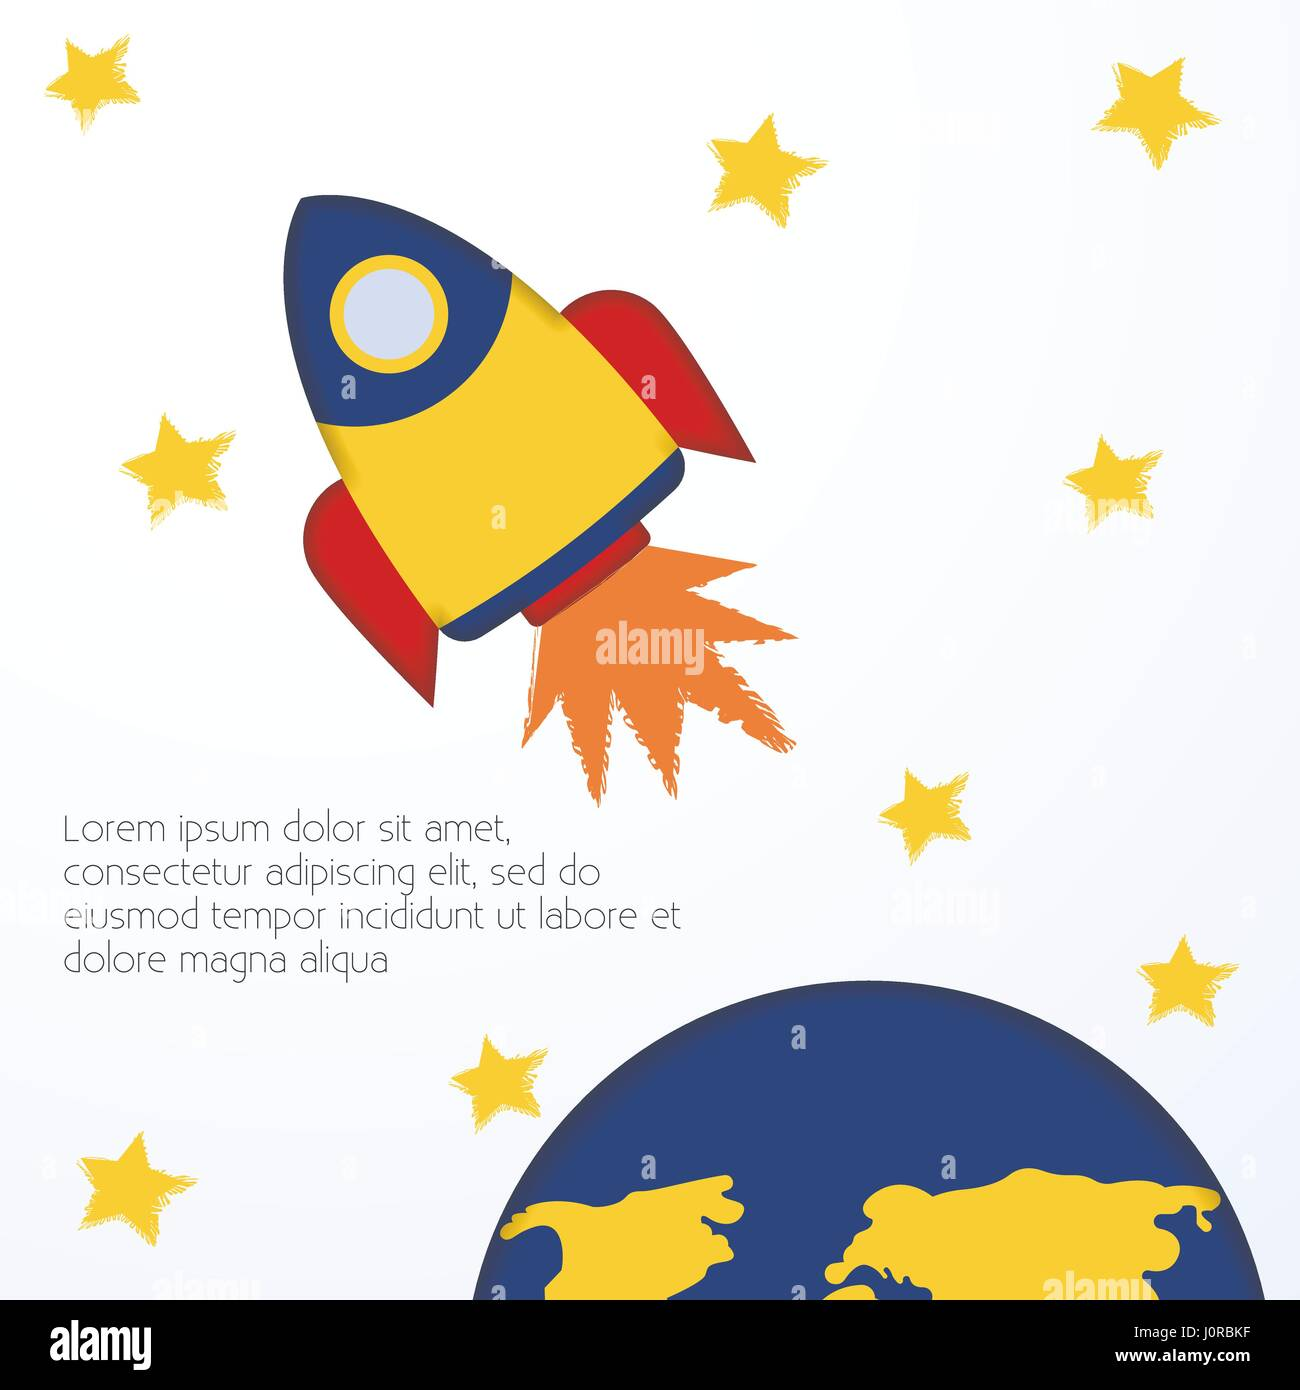 Spacecraft Vector illustration Postcard template Flying yellow rocket among stars on white background Cute design - Stock Image